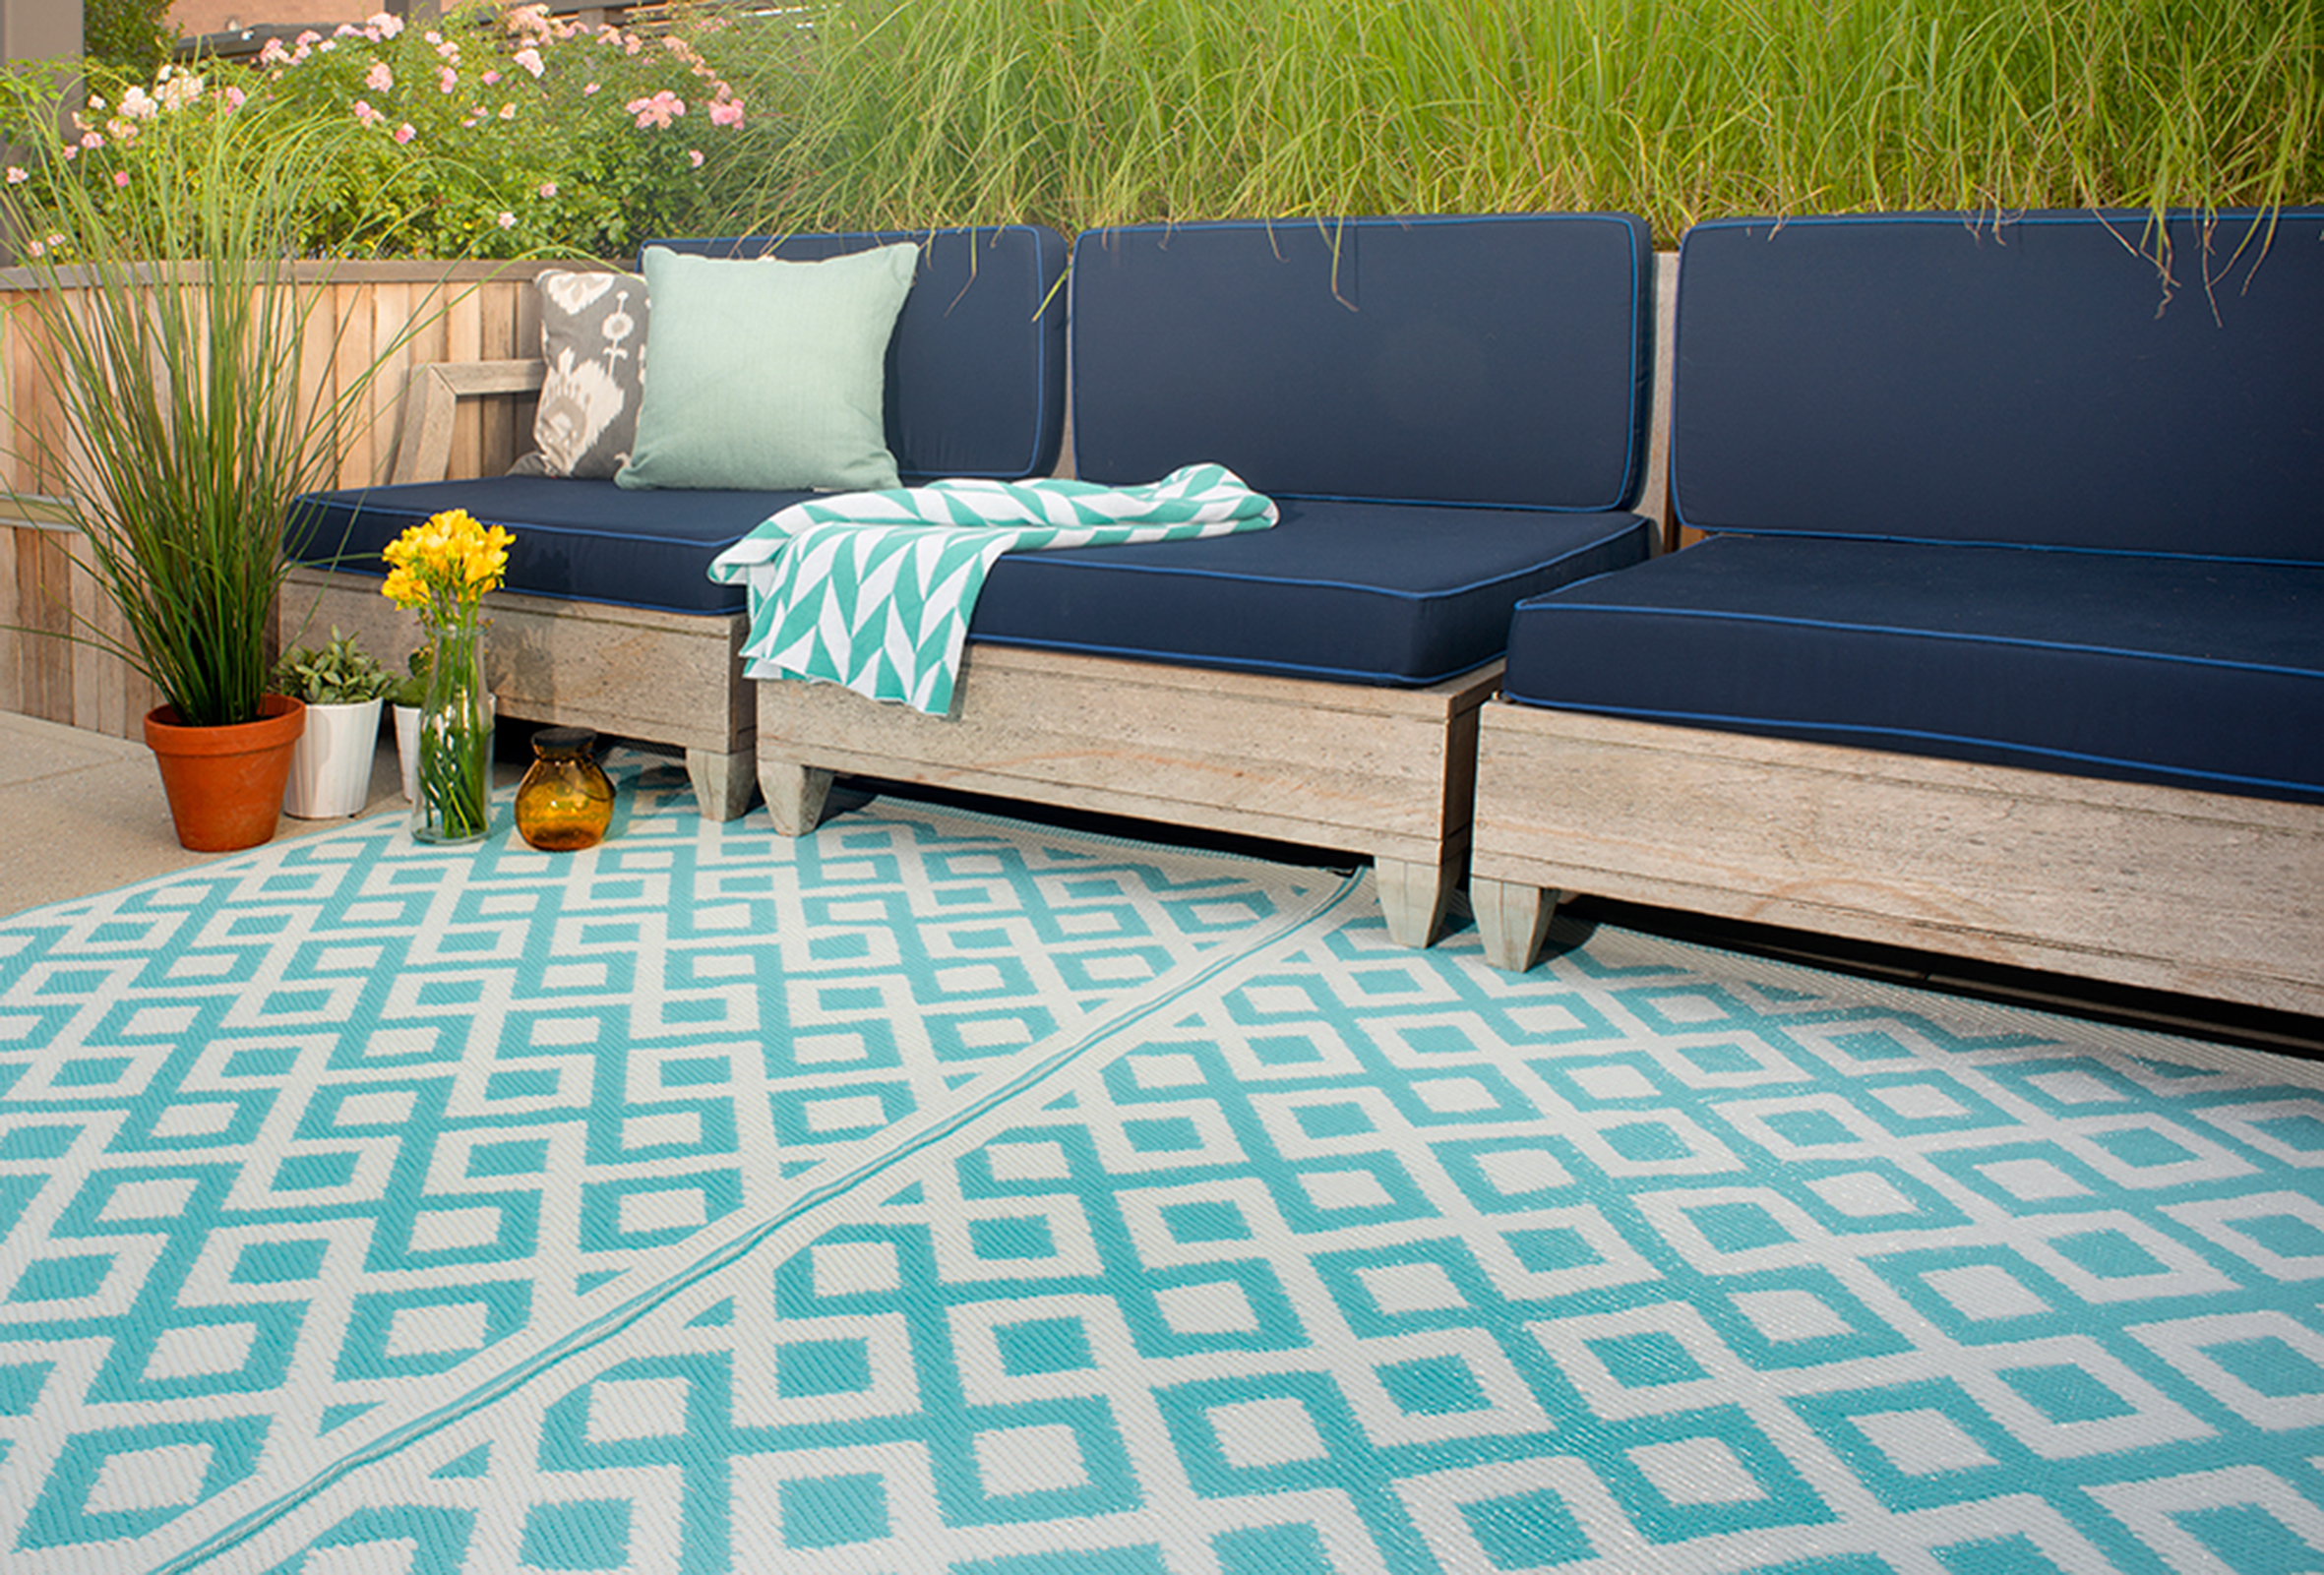 White Blue Motives Recycled Plastic Outdoor Rugs Bold Wooden Sofas Flowers Pots Green Gr